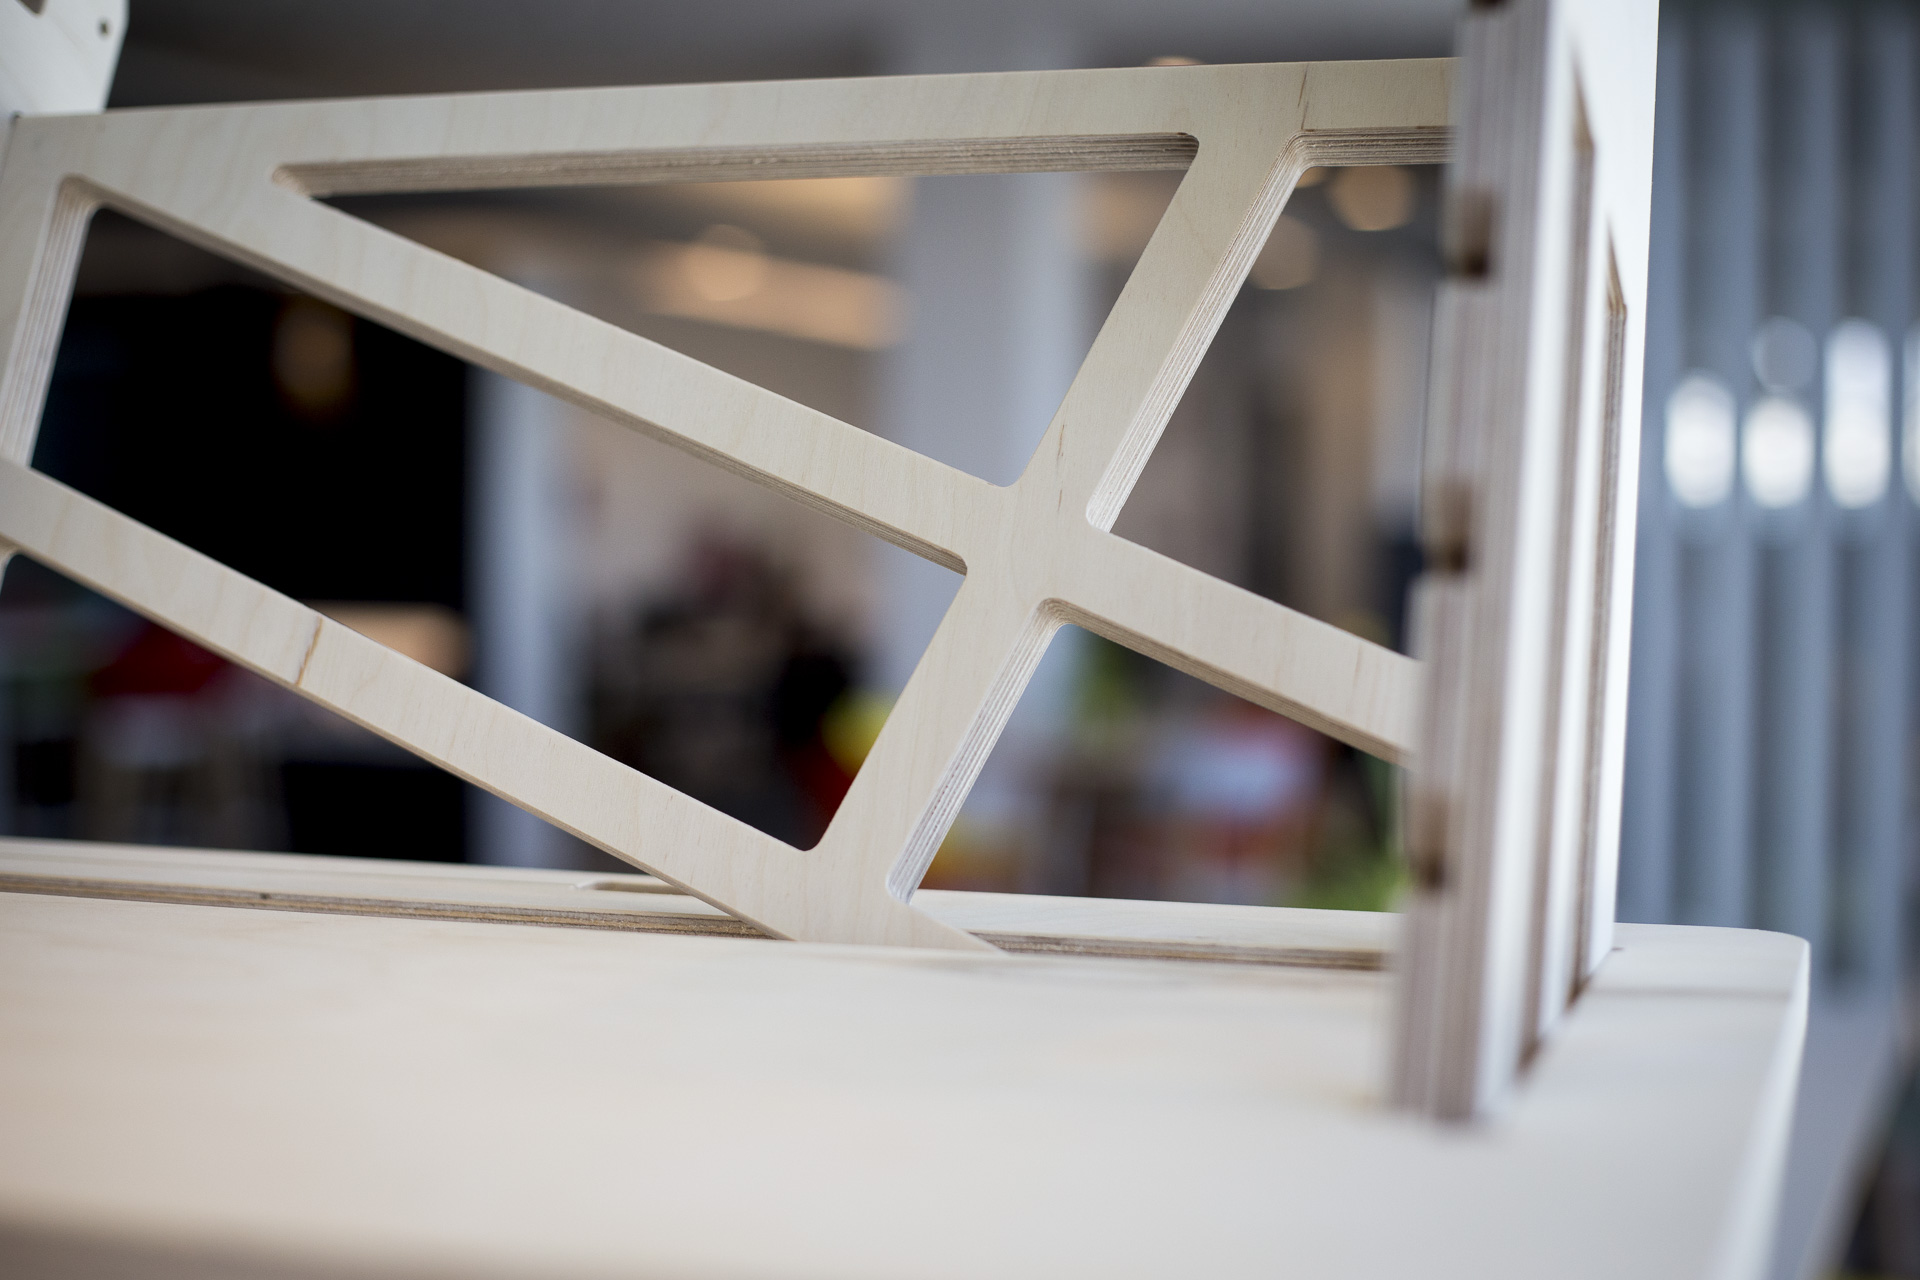 The back support of our standing desk